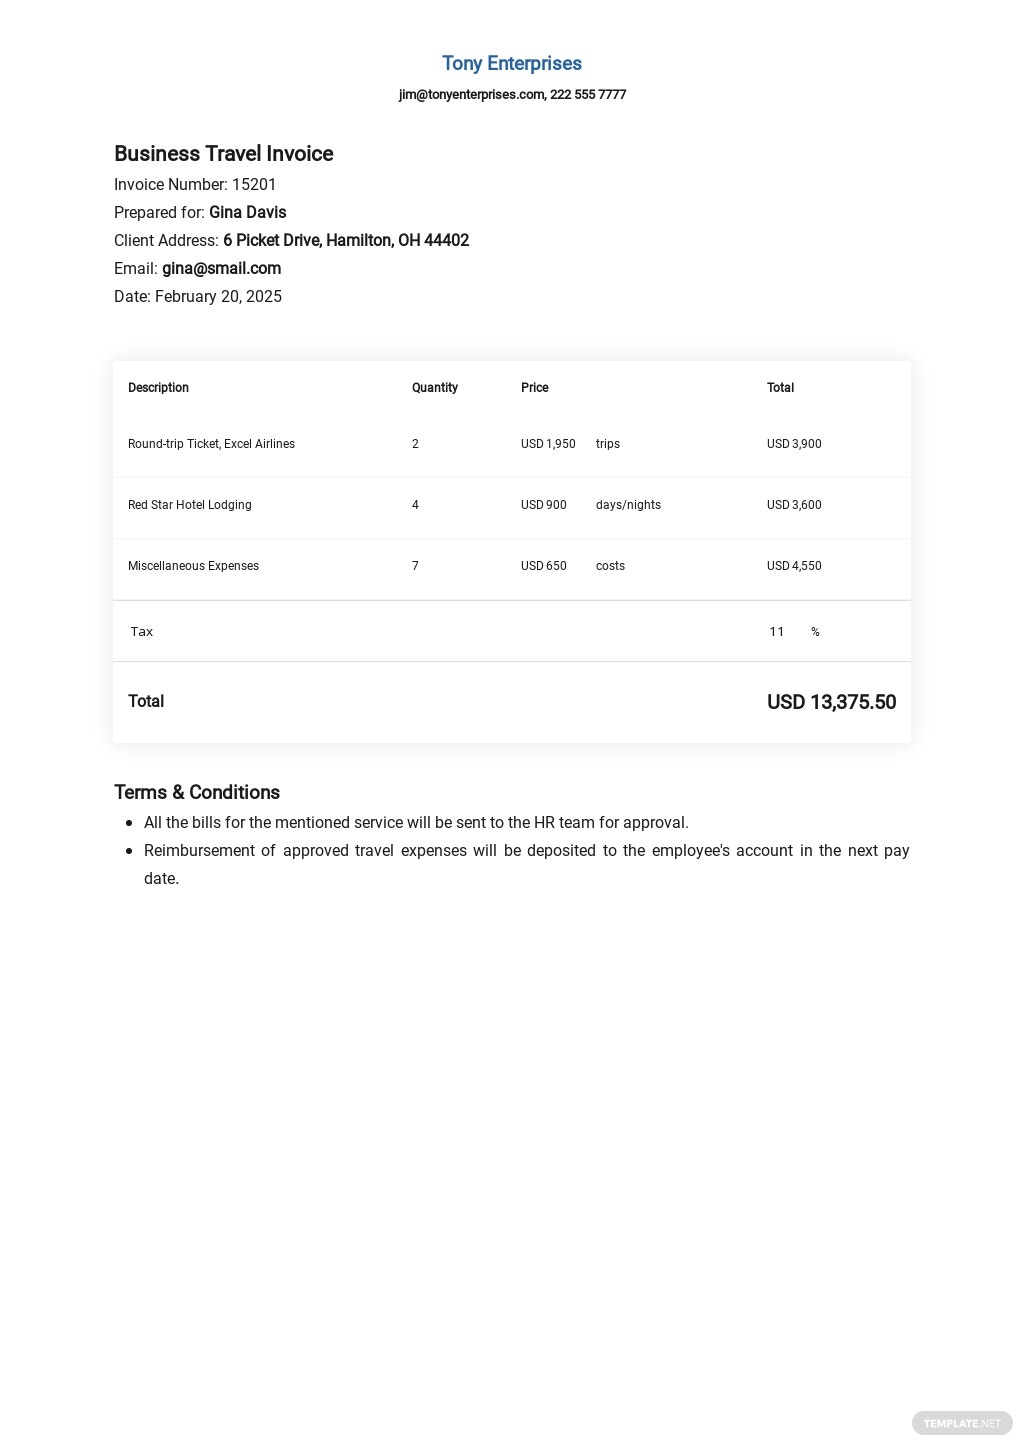 Business Travel Invoice Template